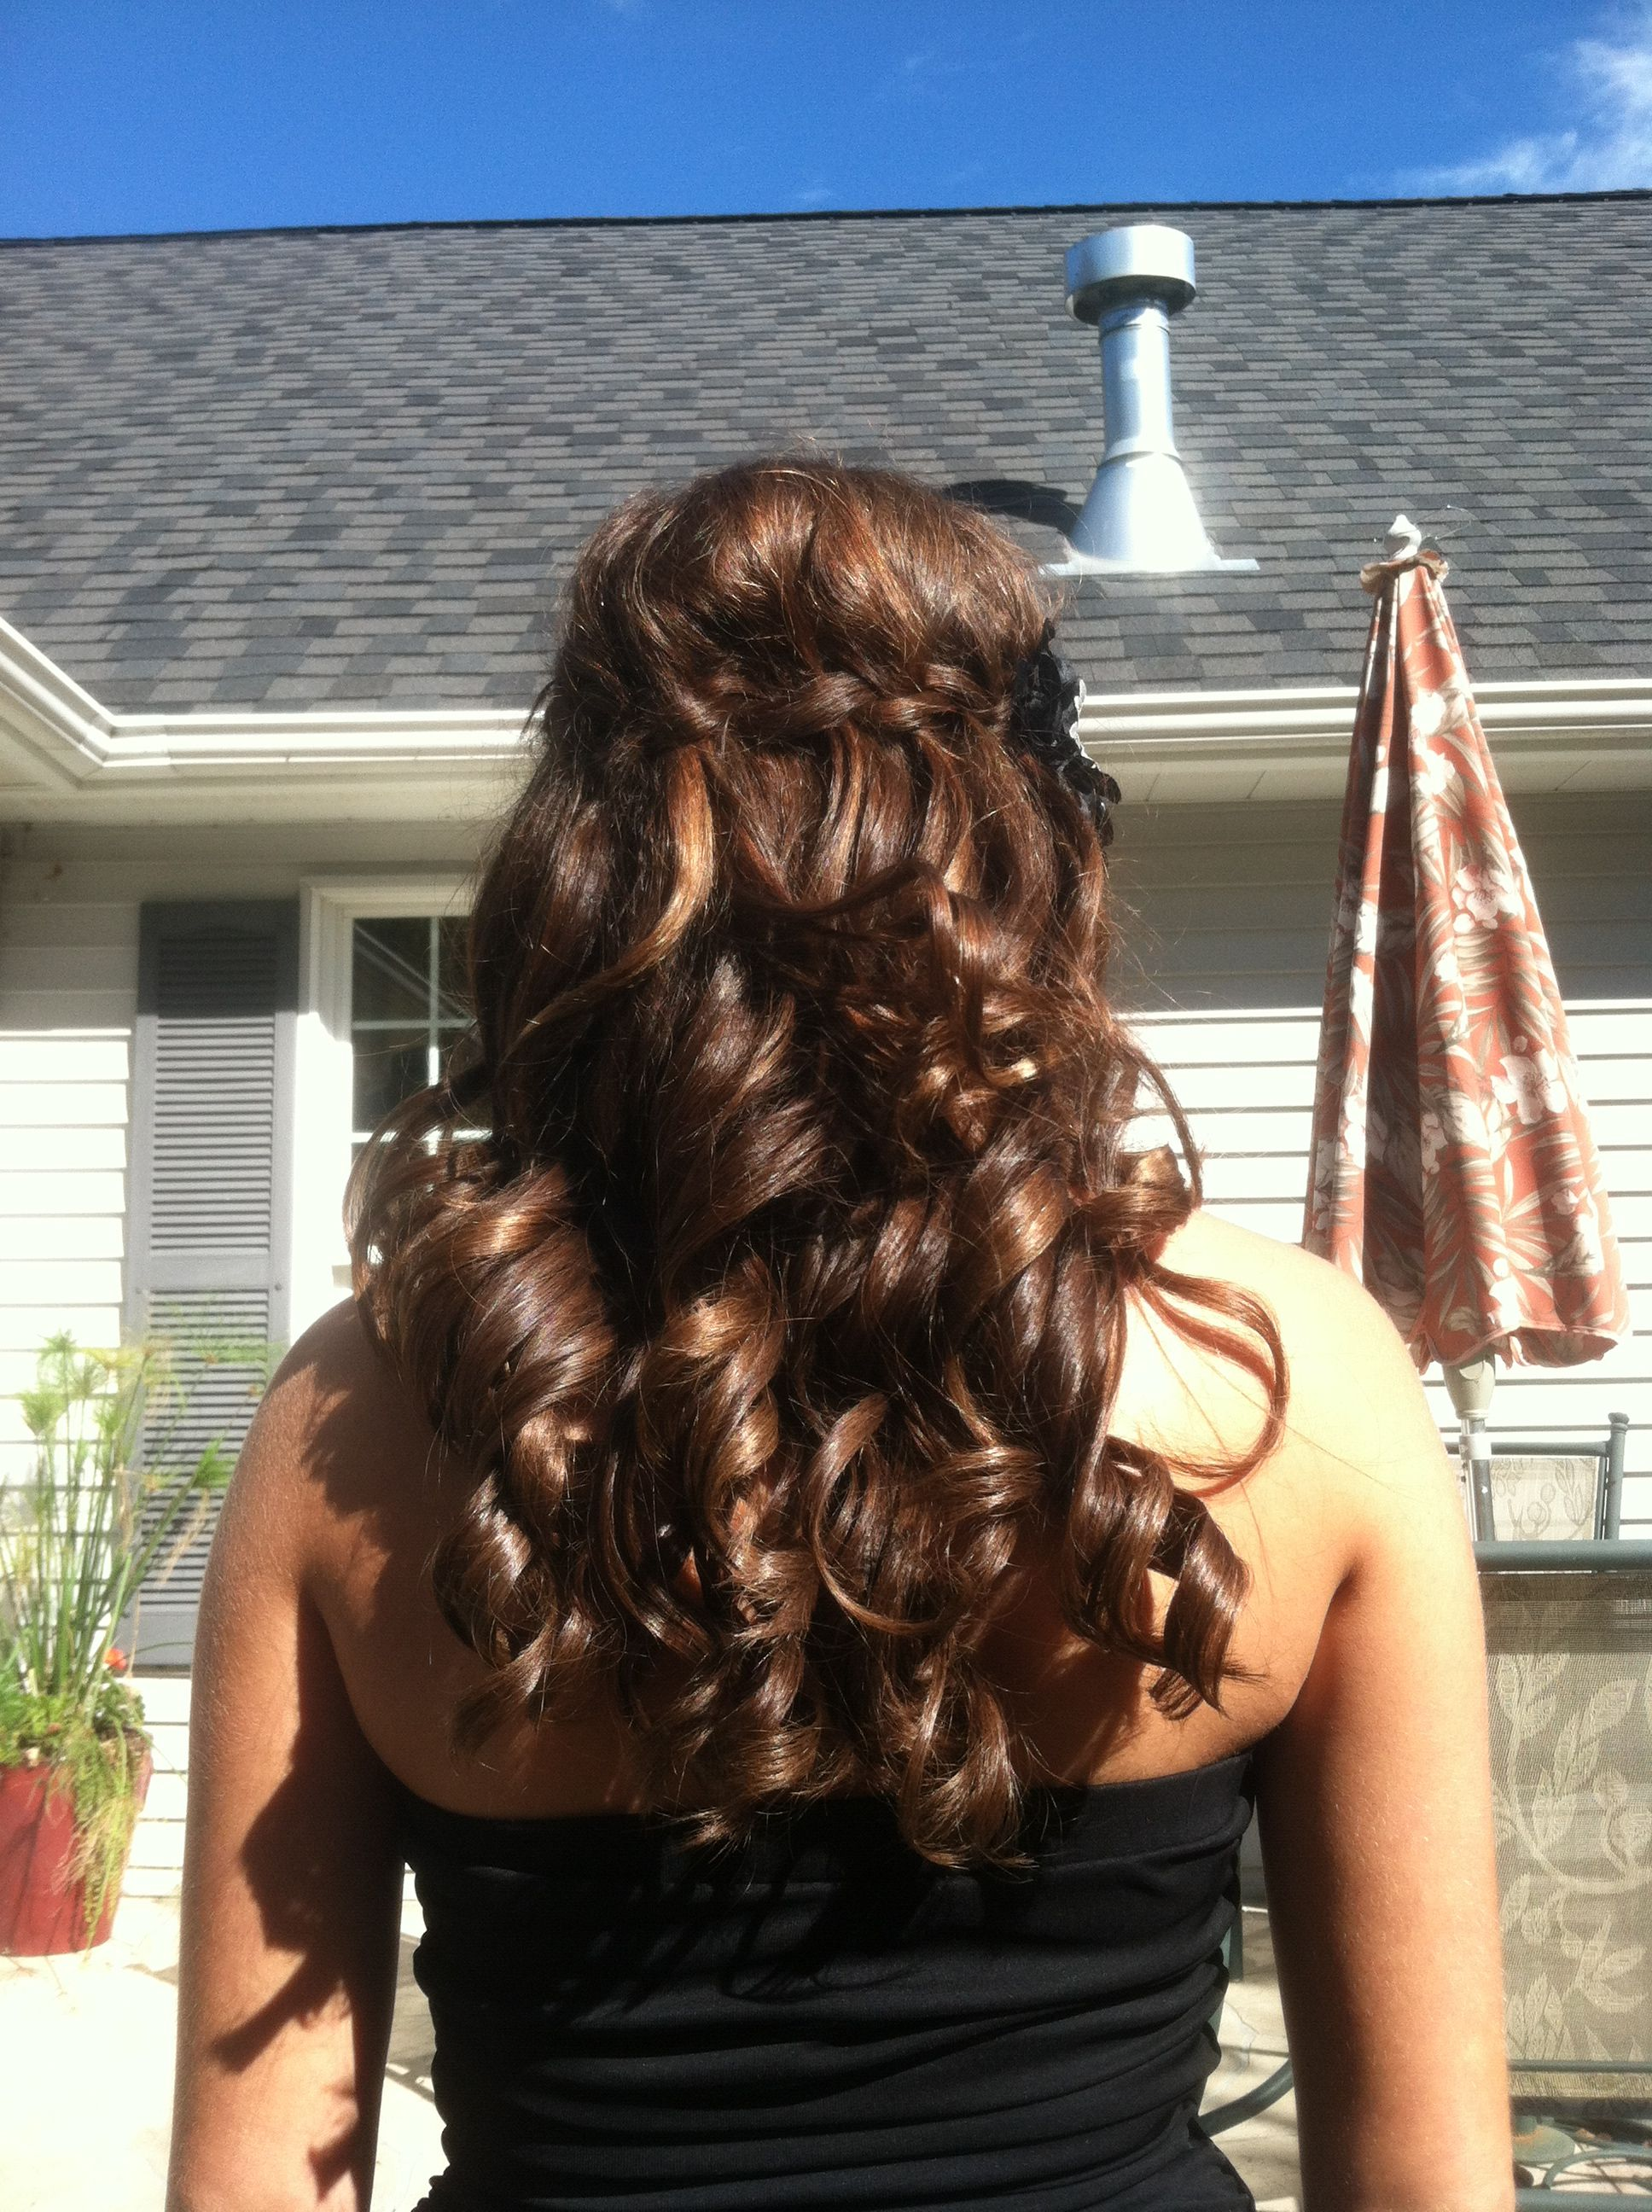 hair styles for a bride cool hair style for homecoming s stuff 9798 | b71b56ad766a694a76ec61915f9798d6